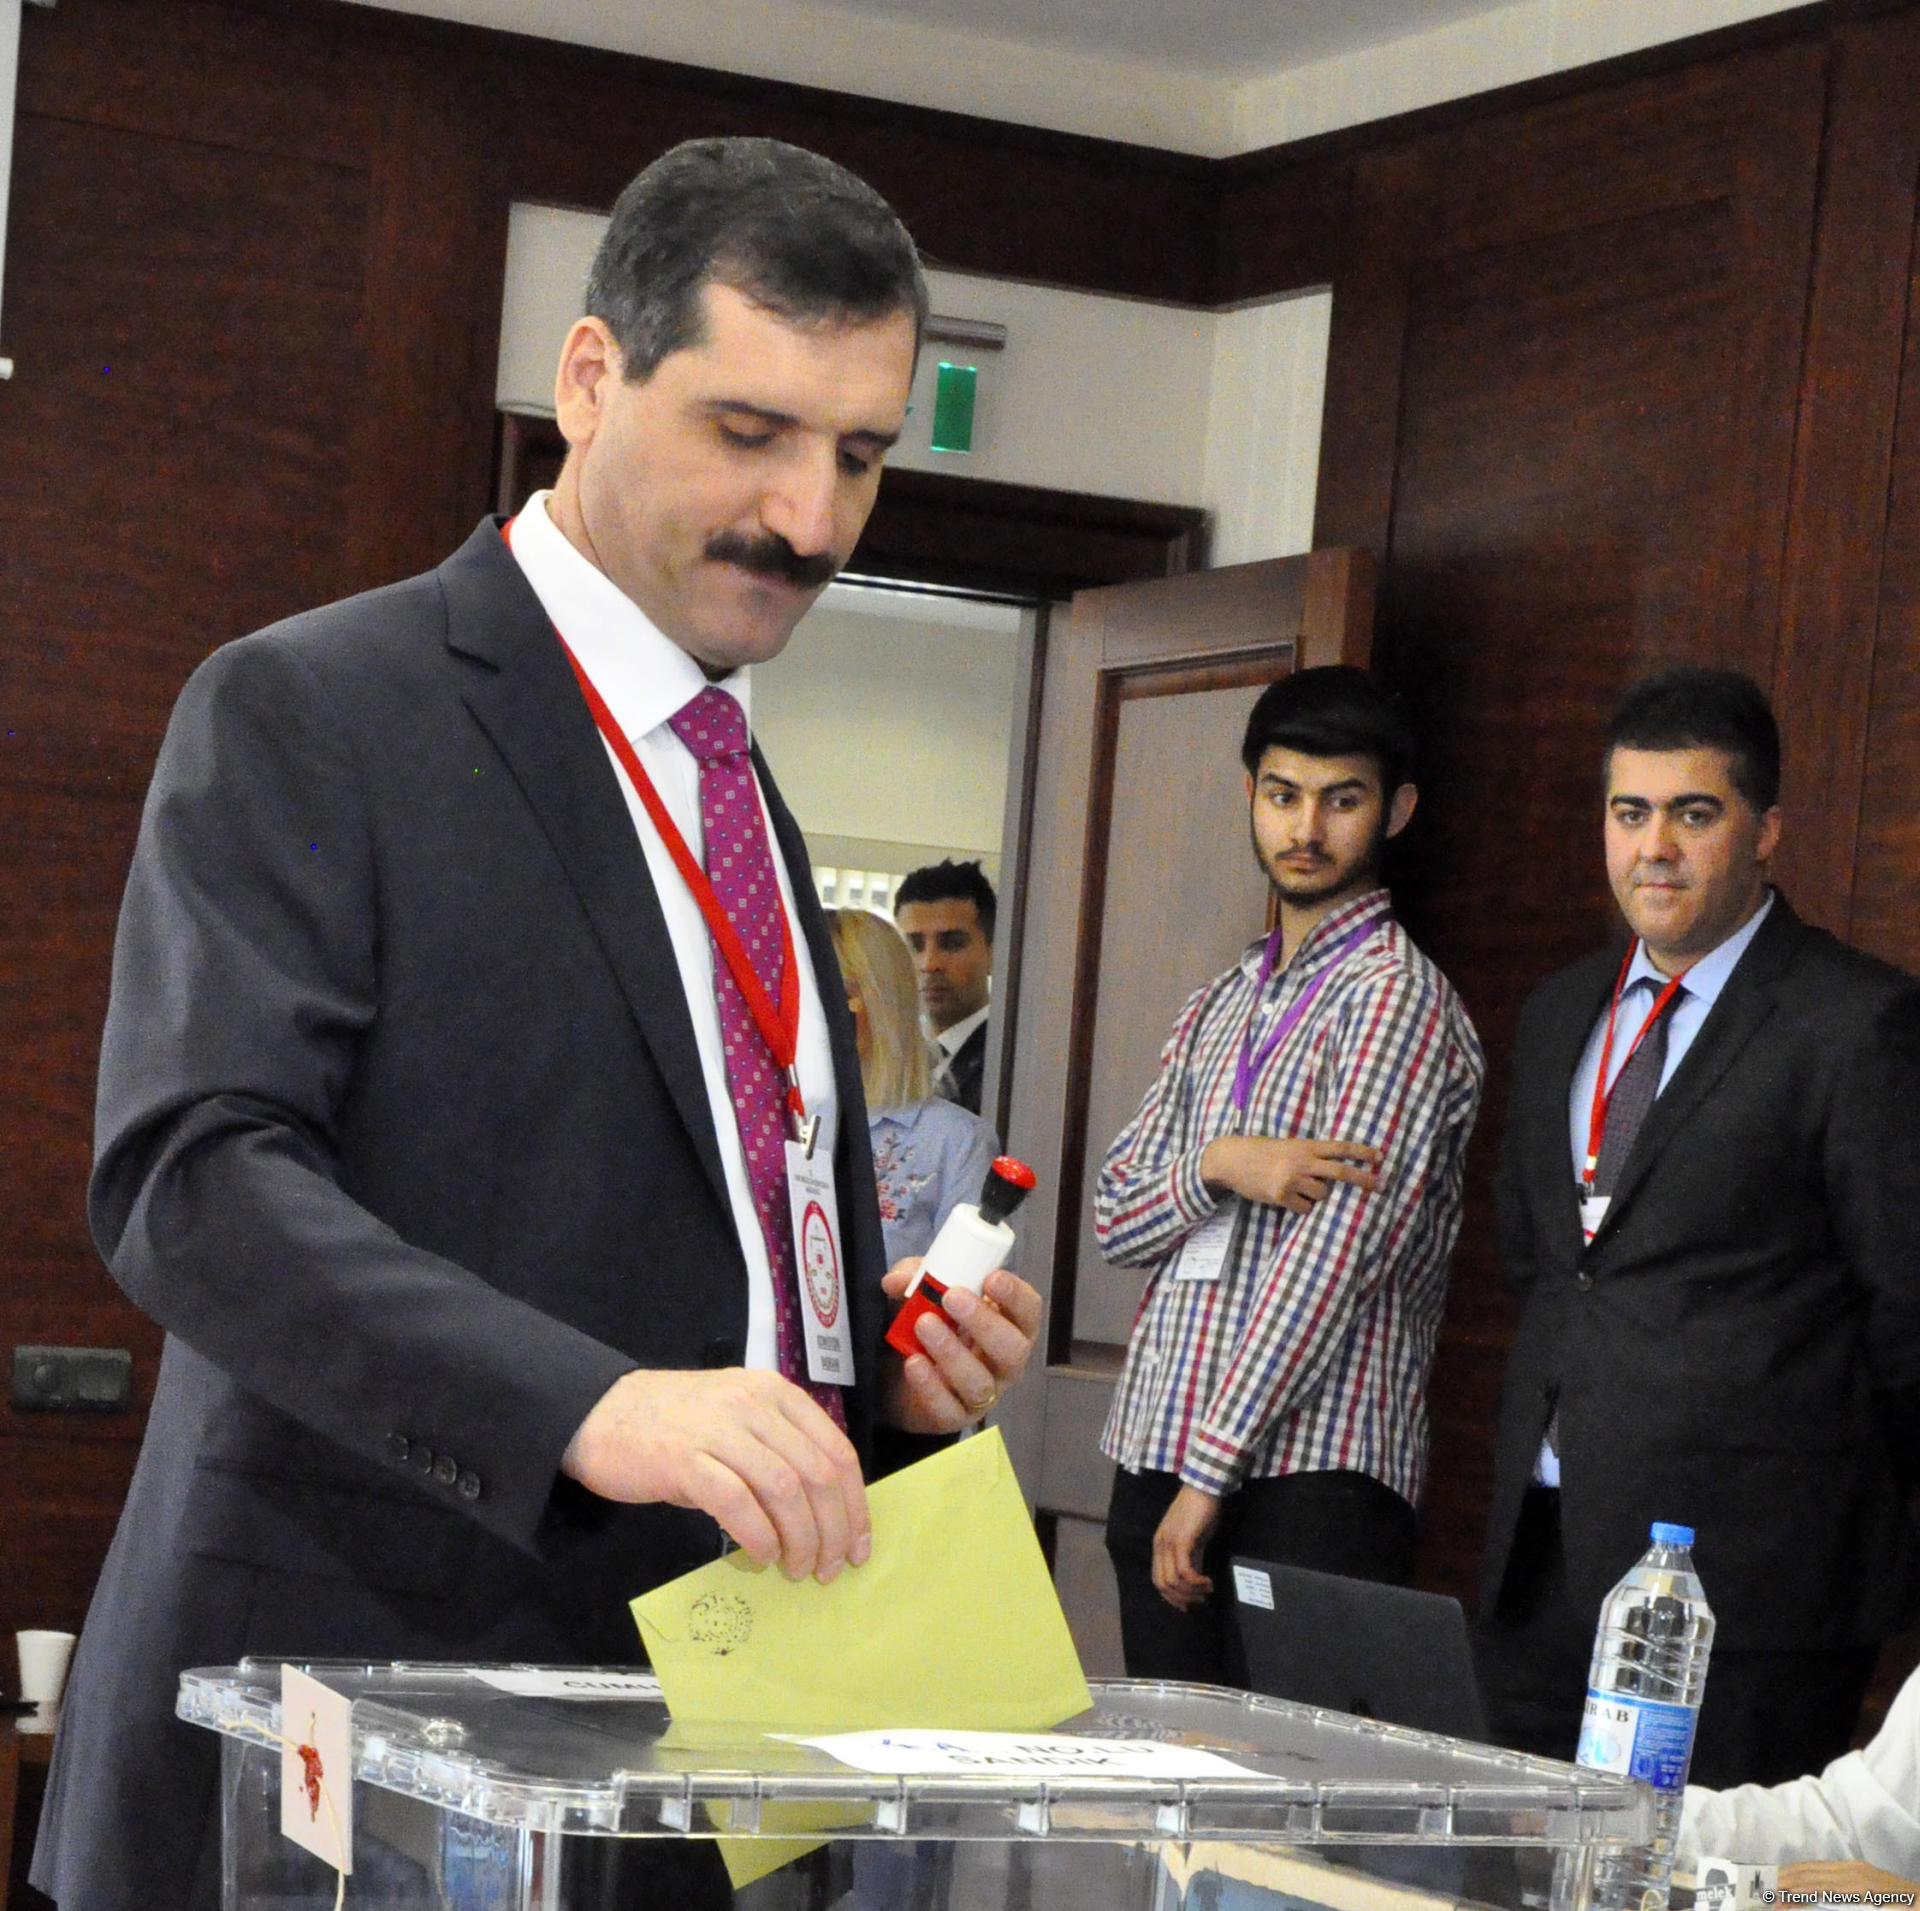 About 6,000 people expected to vote in Turkey's presidential, parliamentary elections in Azerbaijan - envoy